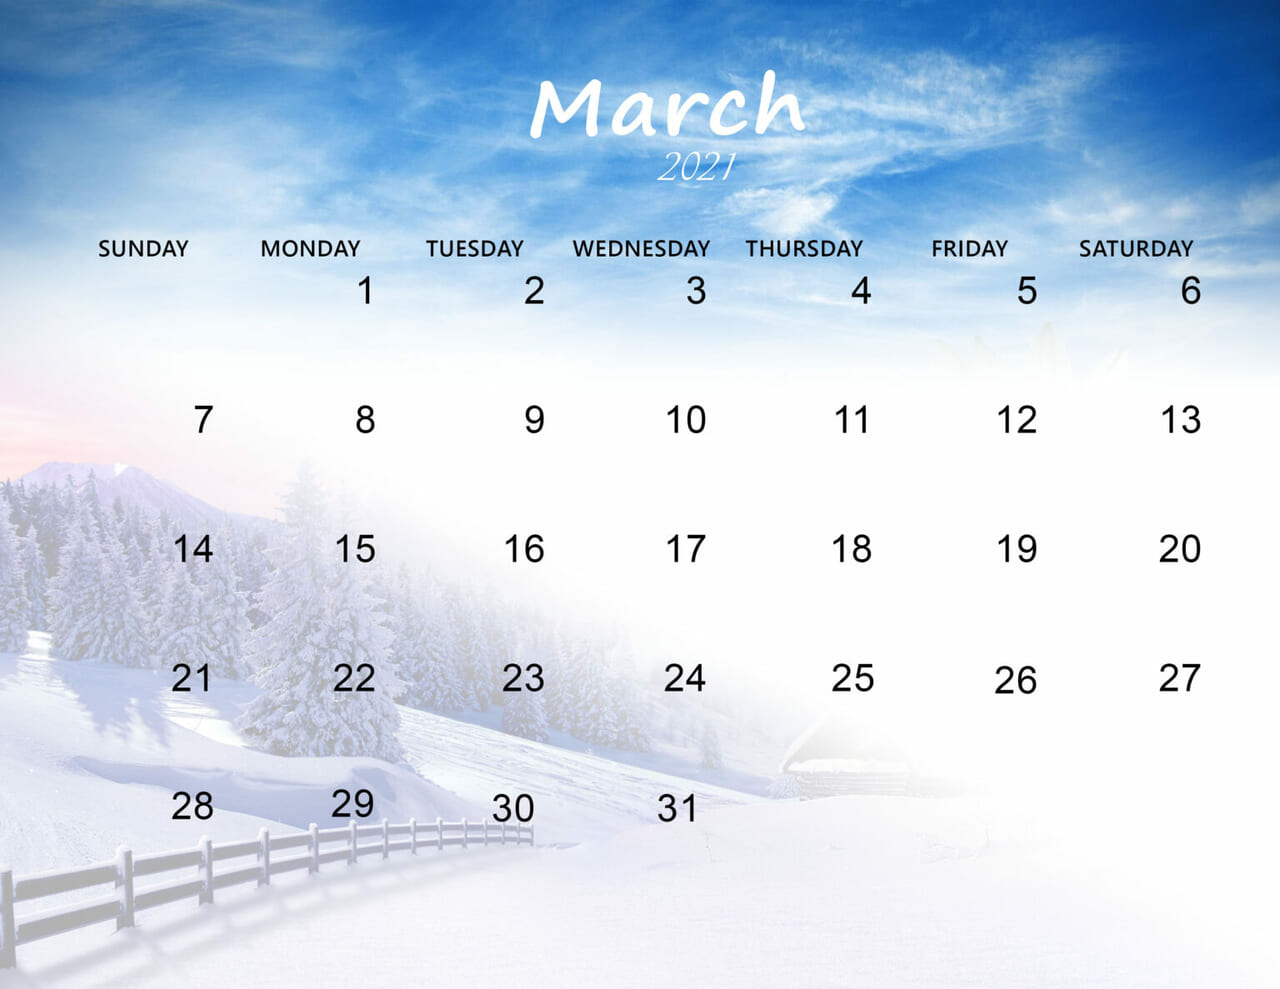 article and march 2021 calendar image